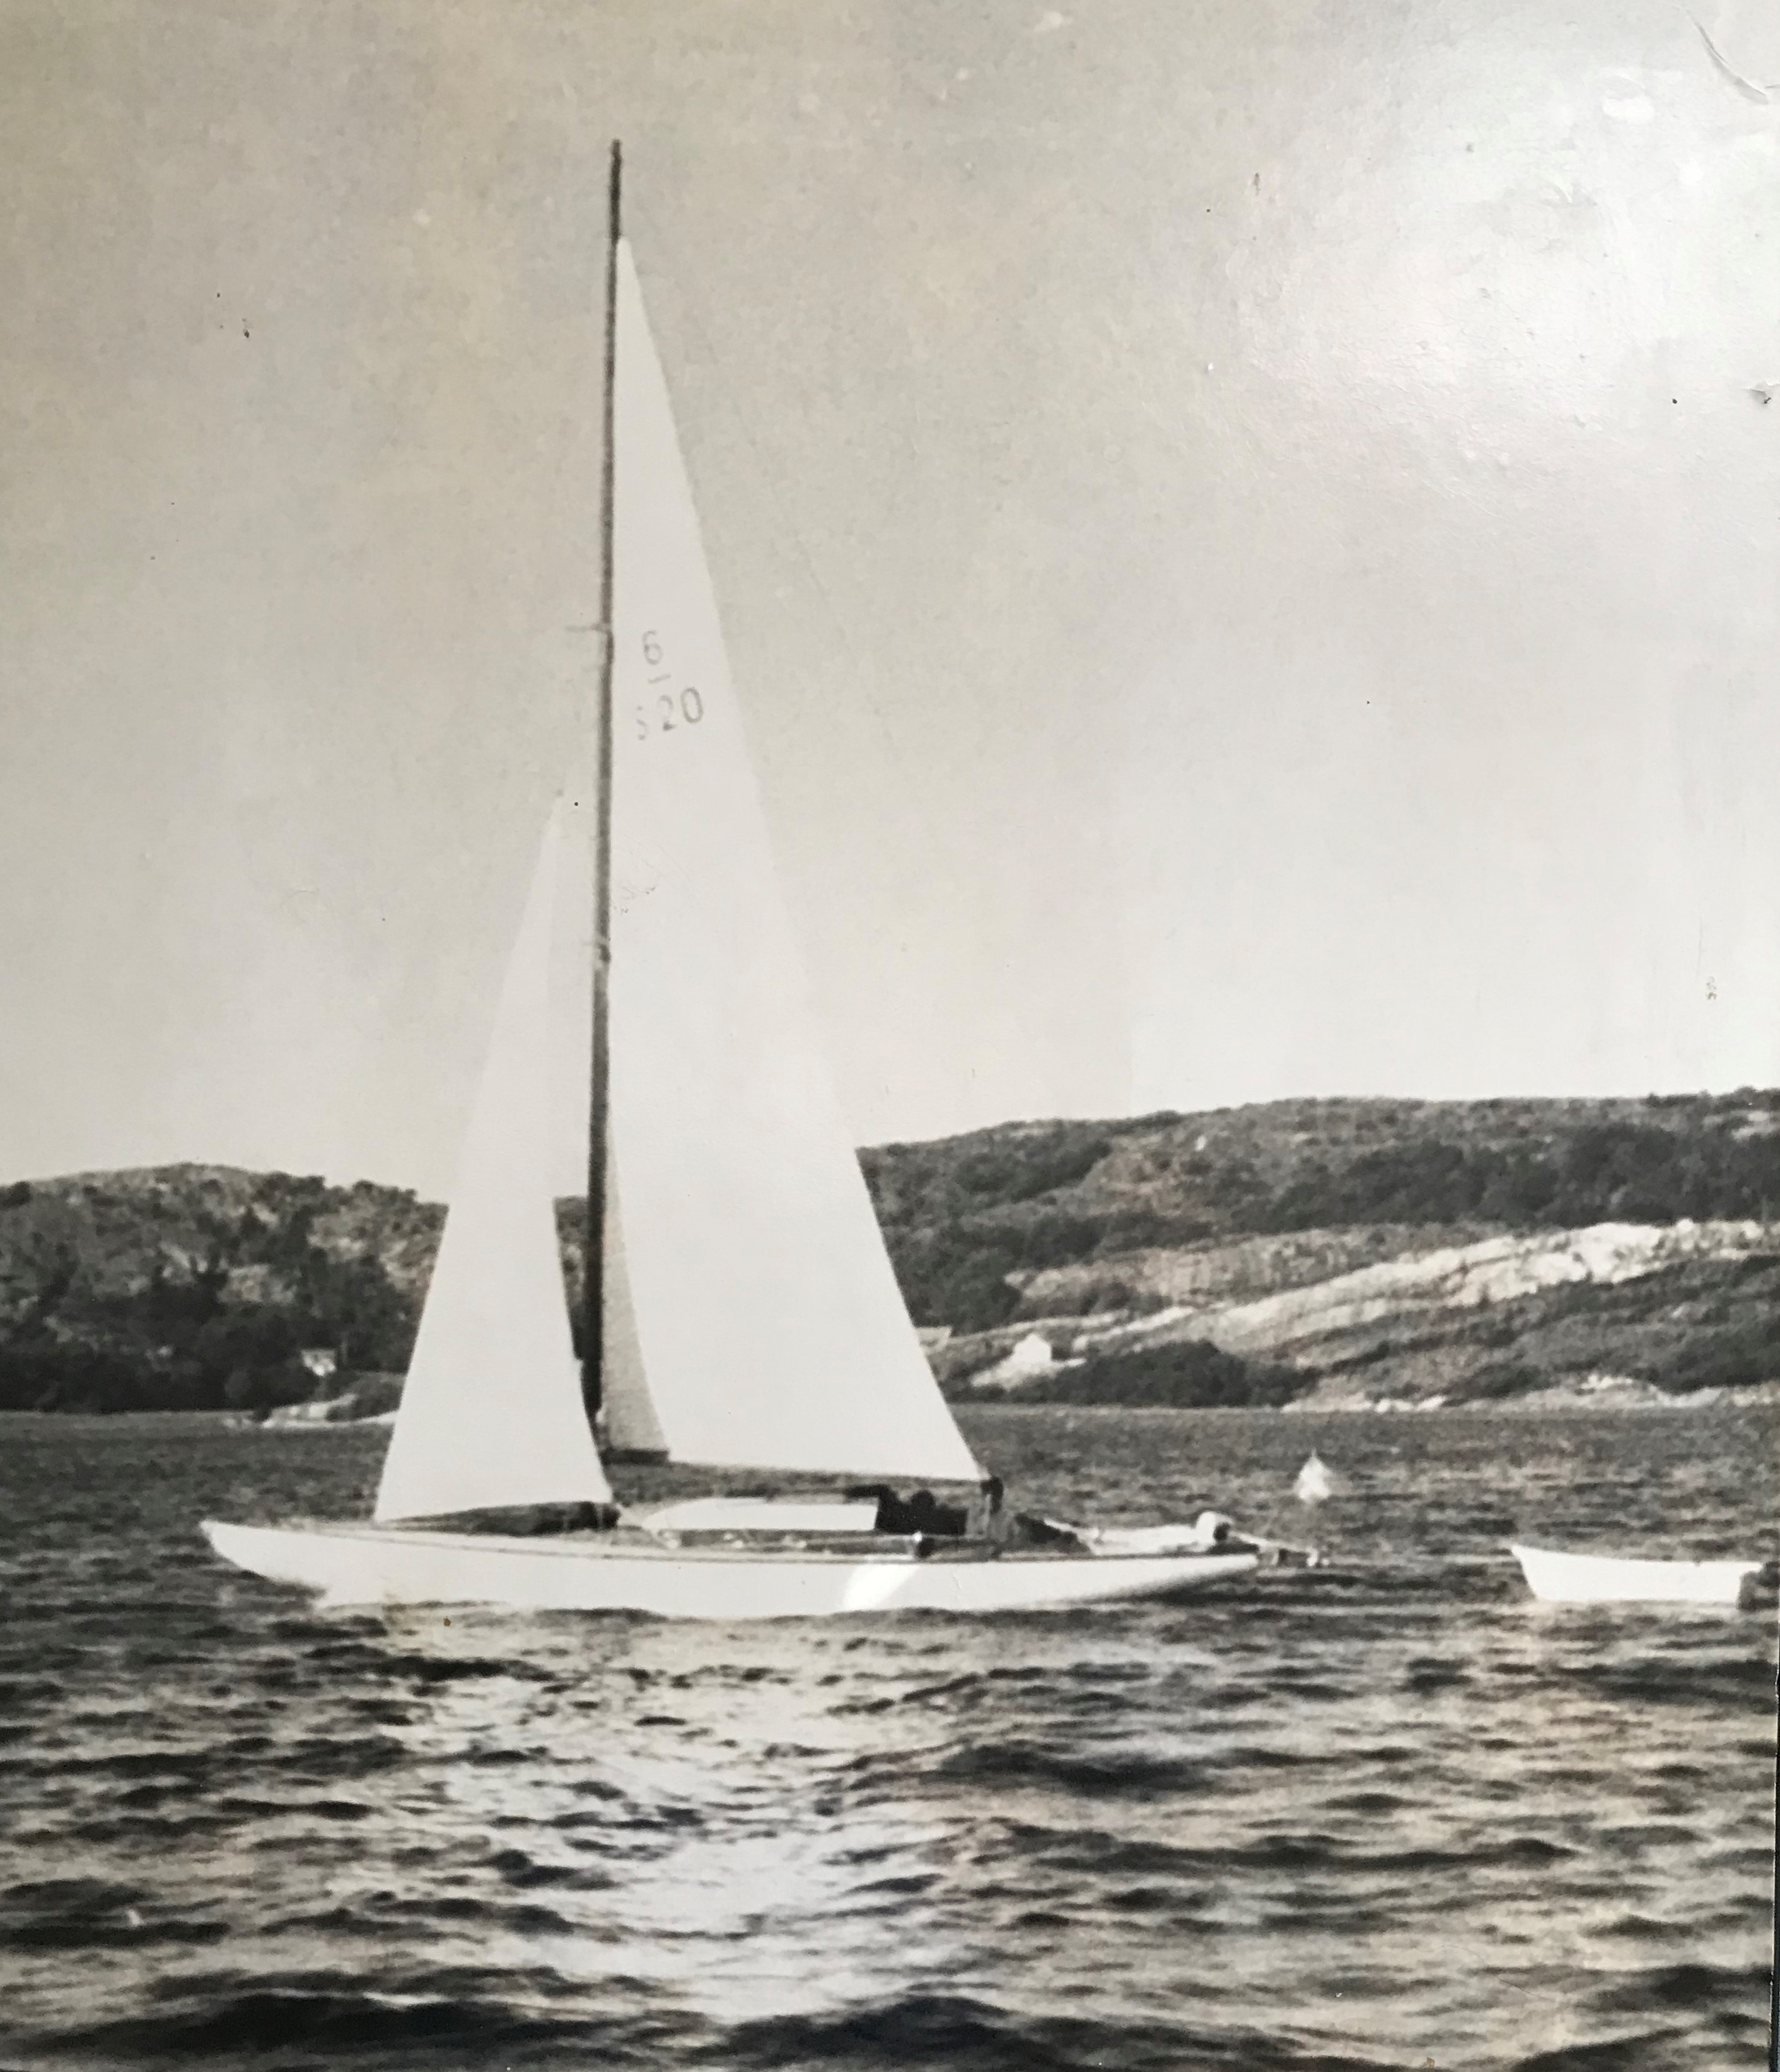 Black and white photograph of sailing boat